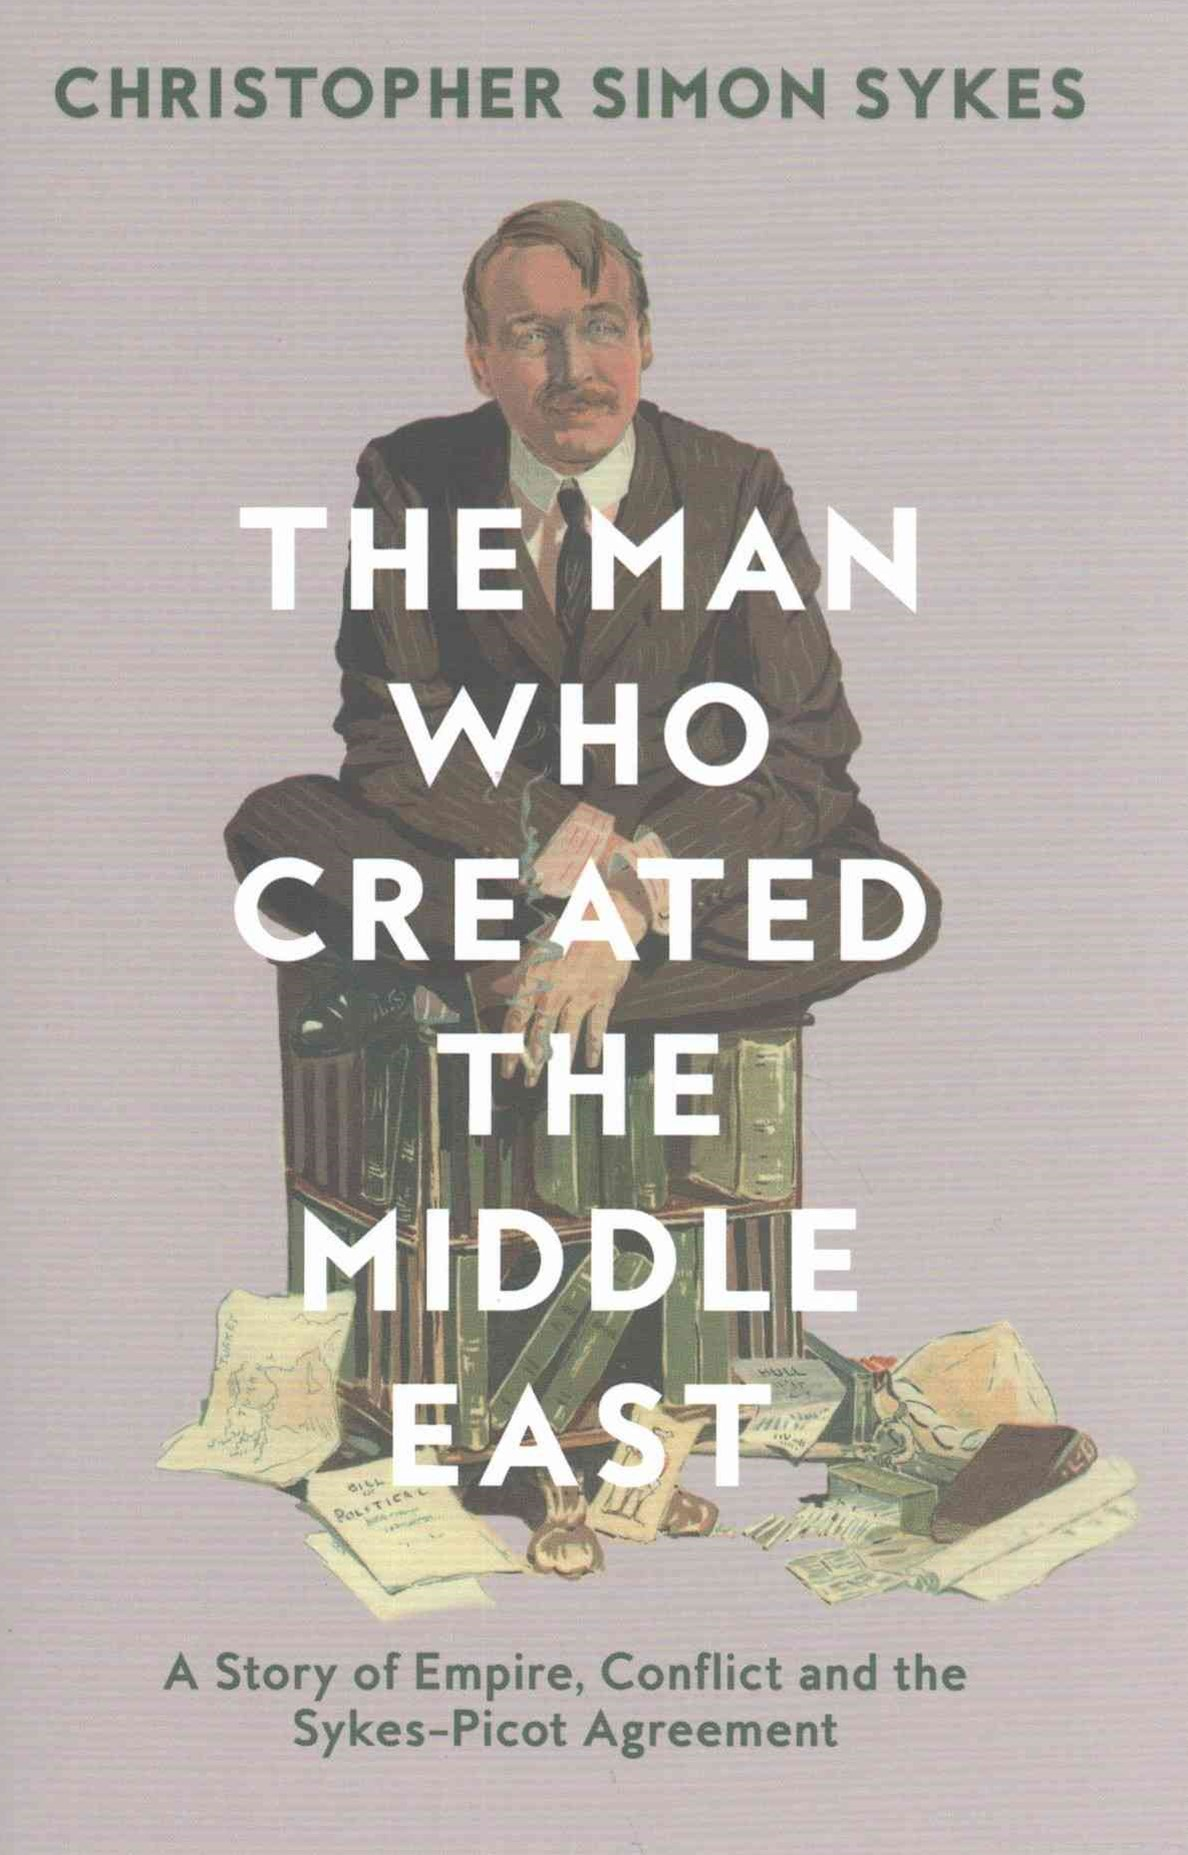 The Man Who Created the Middle East: A Story of Empire, Conflict and theSykes-Picot Agreement